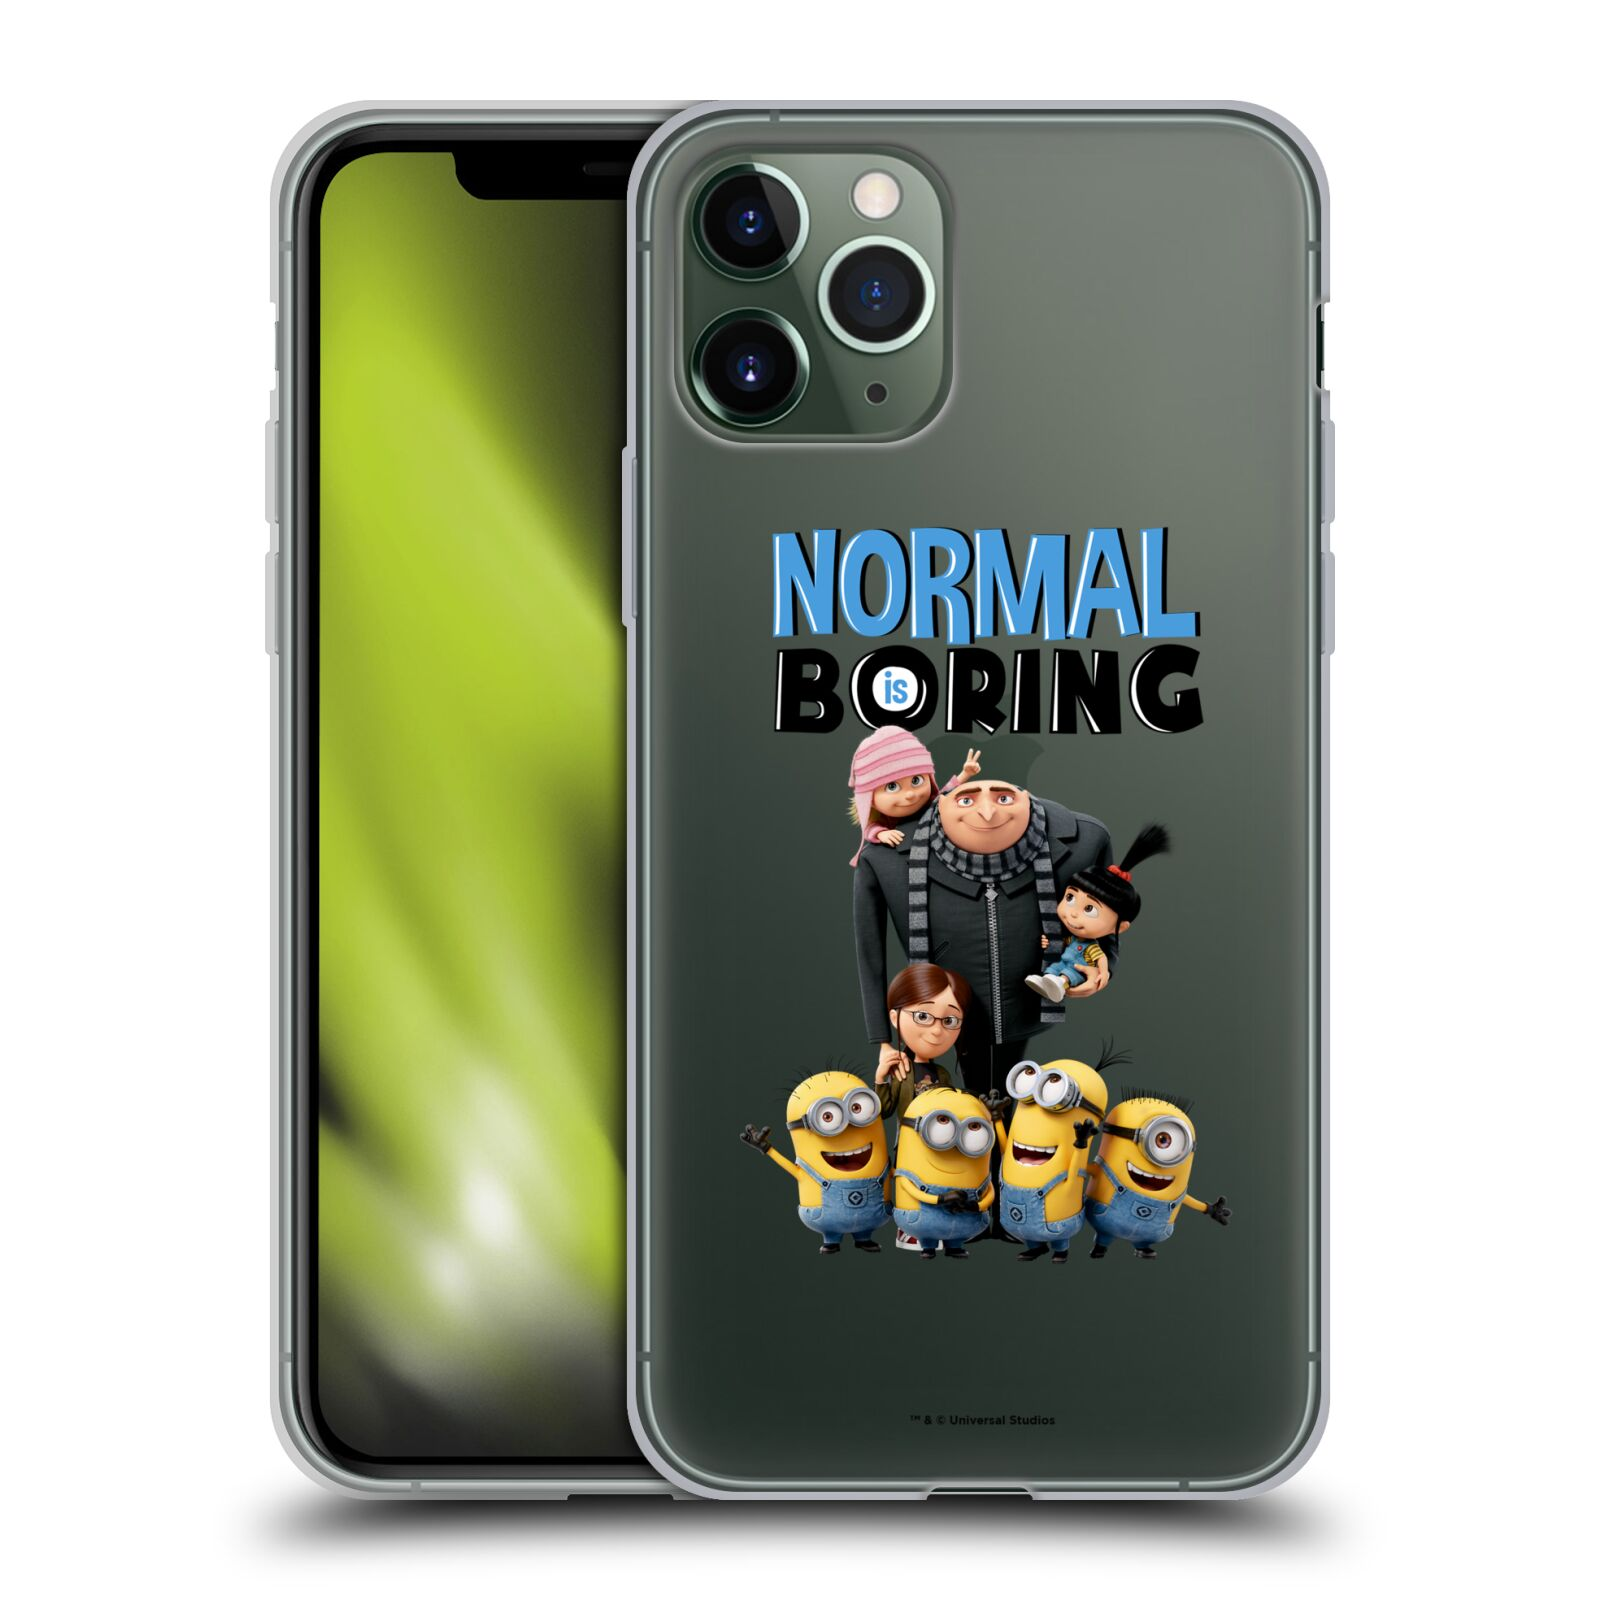 sluchátka iphone | Silikonové pouzdro na mobil Apple iPhone 11 Pro - Head Case - Normal is boring z filmu Já, padouch - Despicable Me